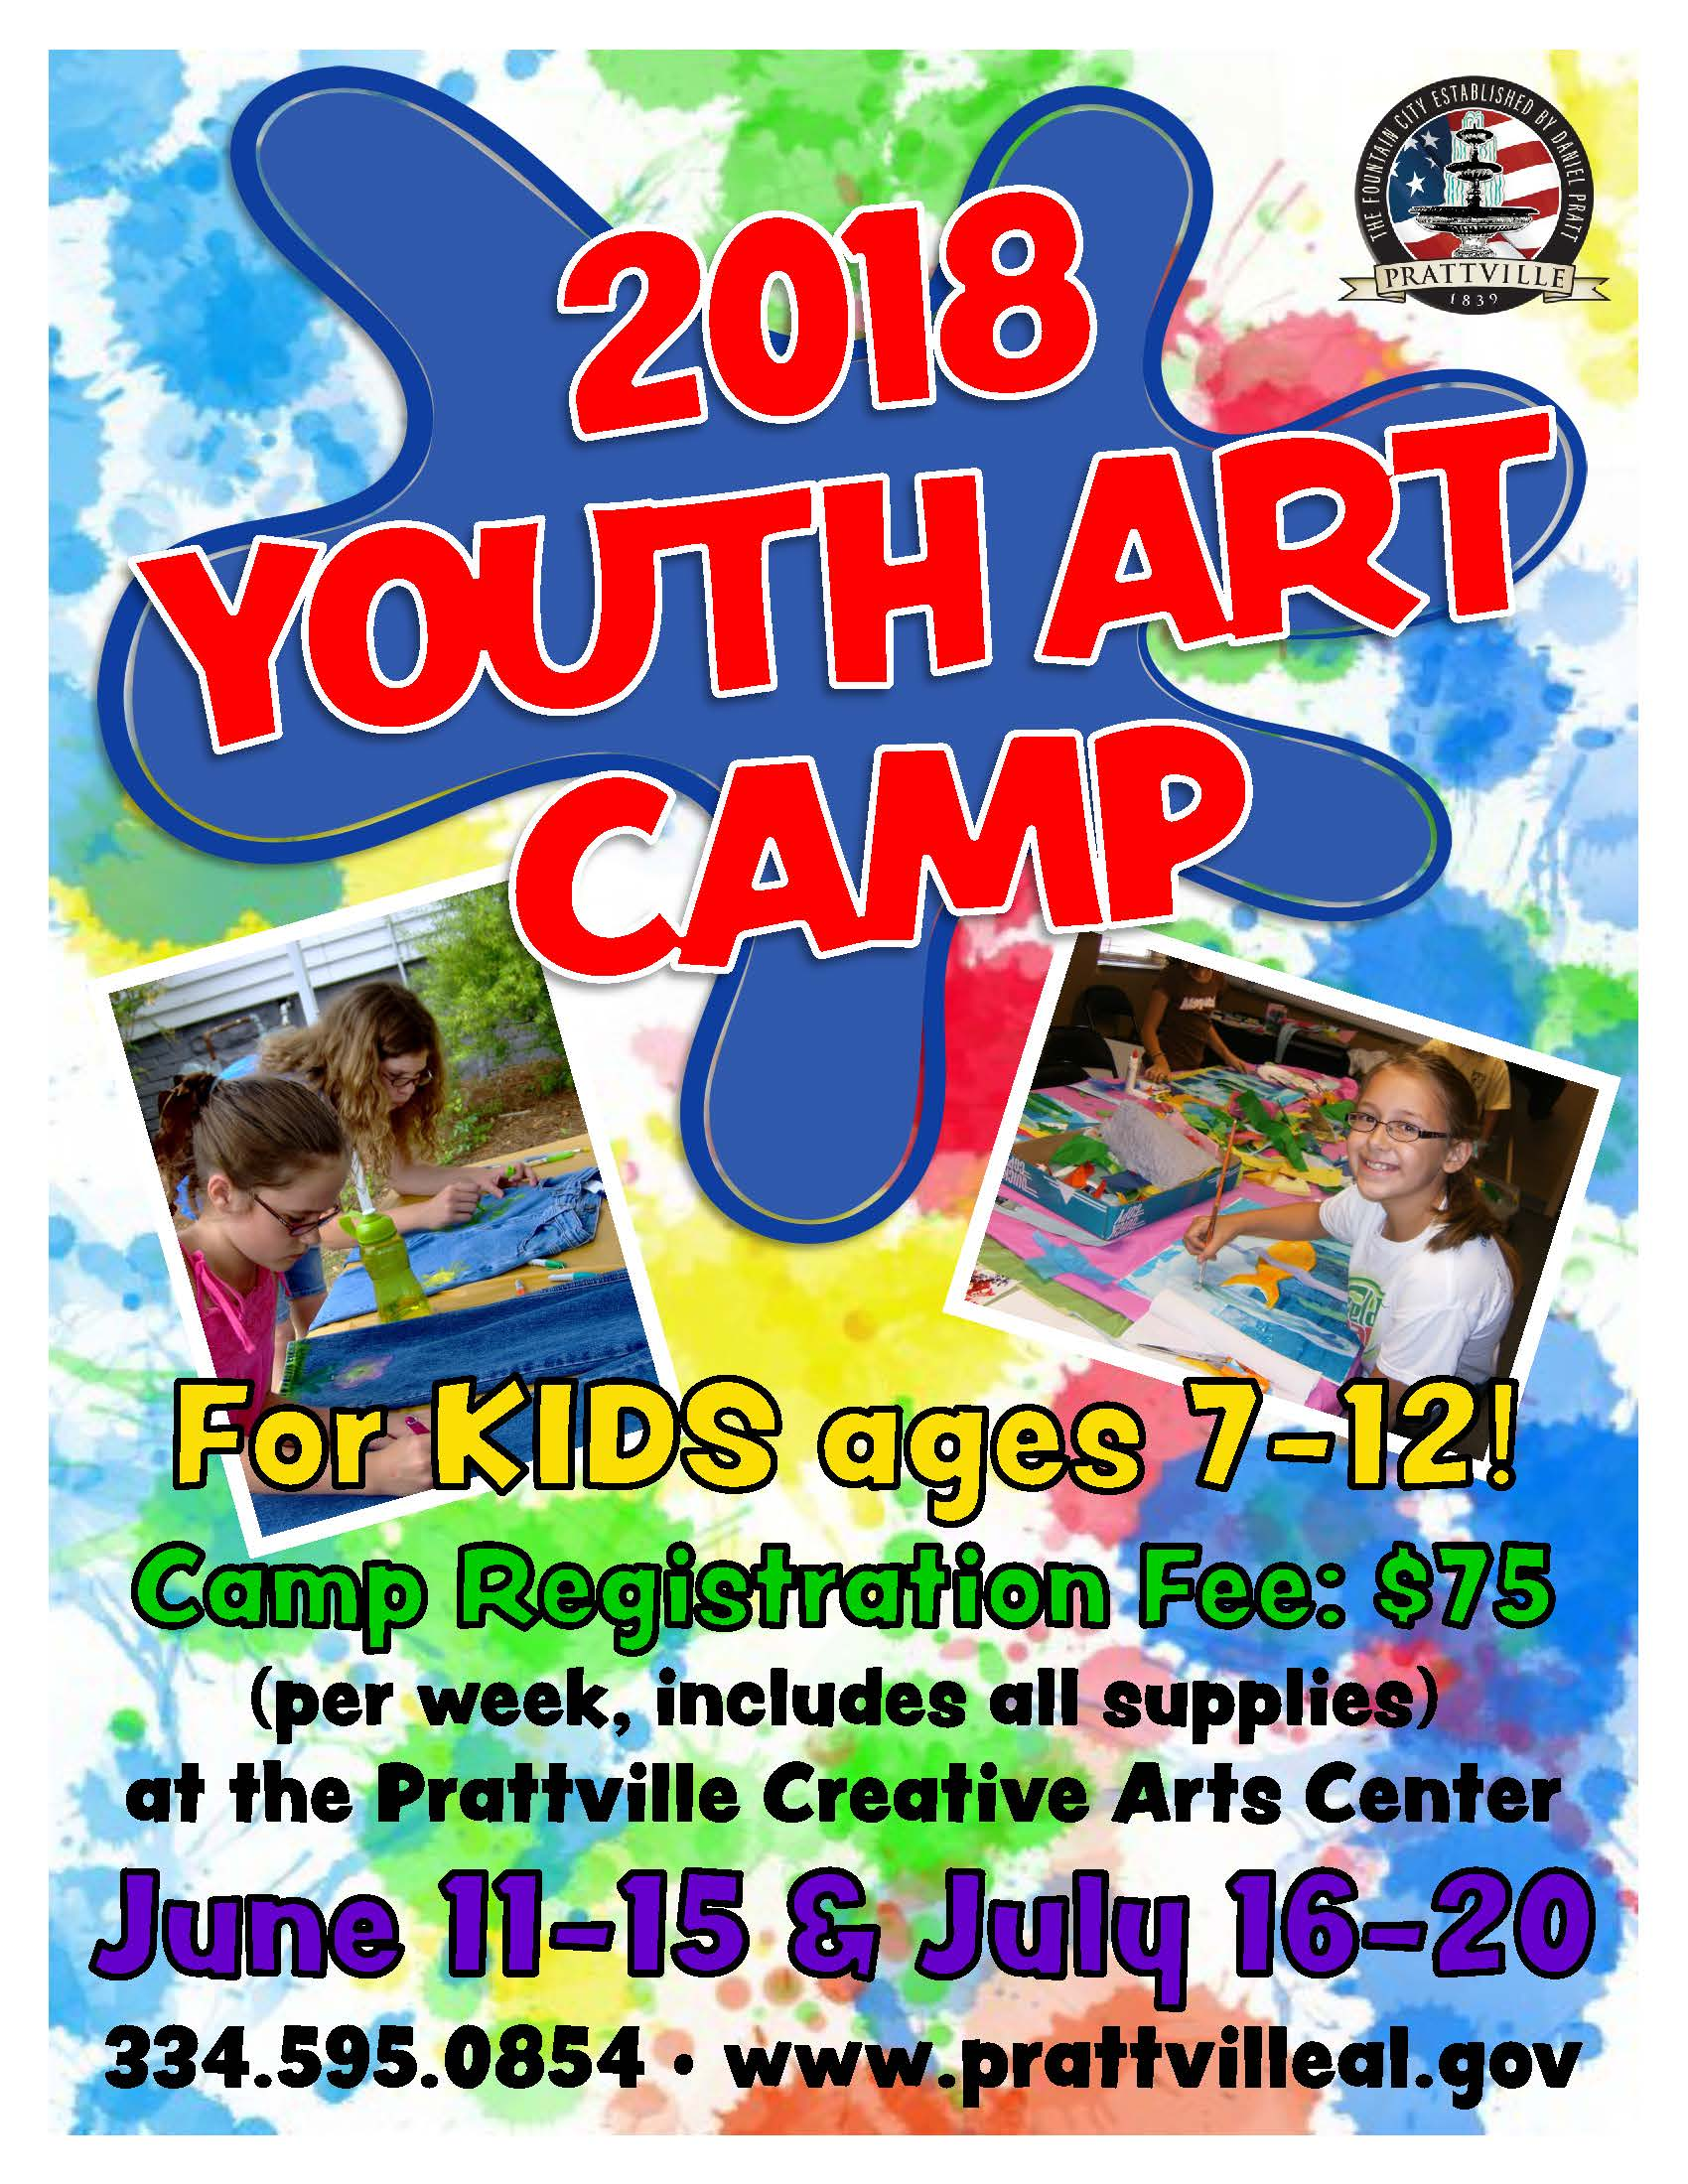 2018 Youth Art Camp